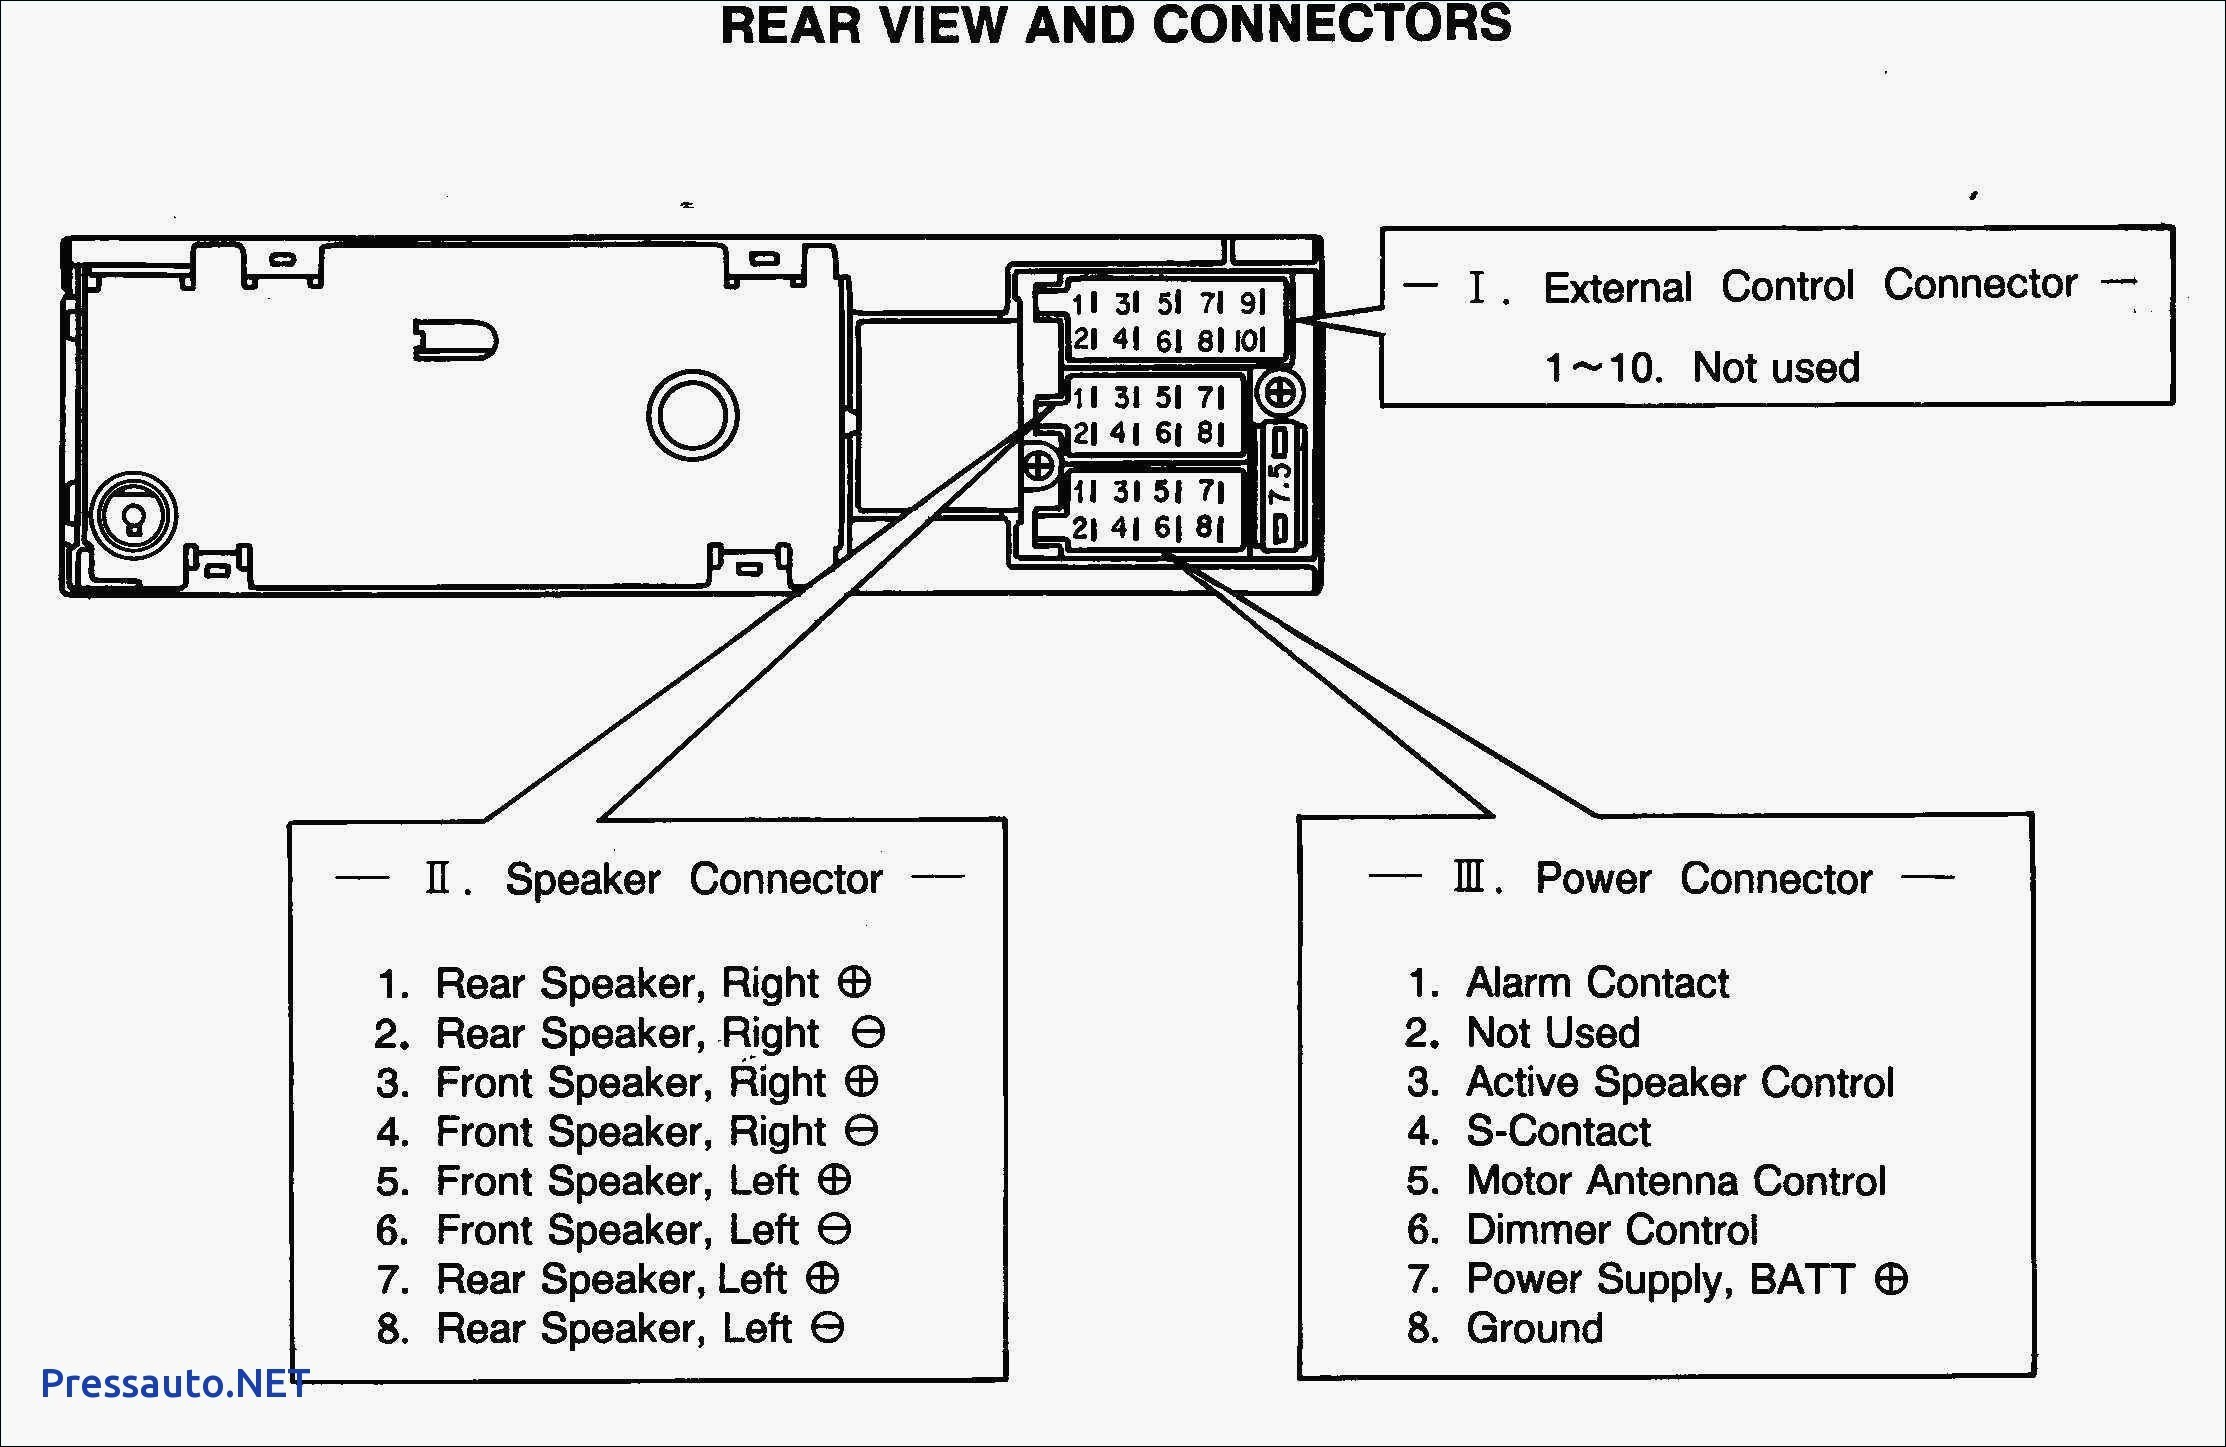 2002 Vw Jetta Engine Diagram Vw Stereo Wiring Harness Another Blog About Wiring Diagram • Of 2002 Vw Jetta Engine Diagram